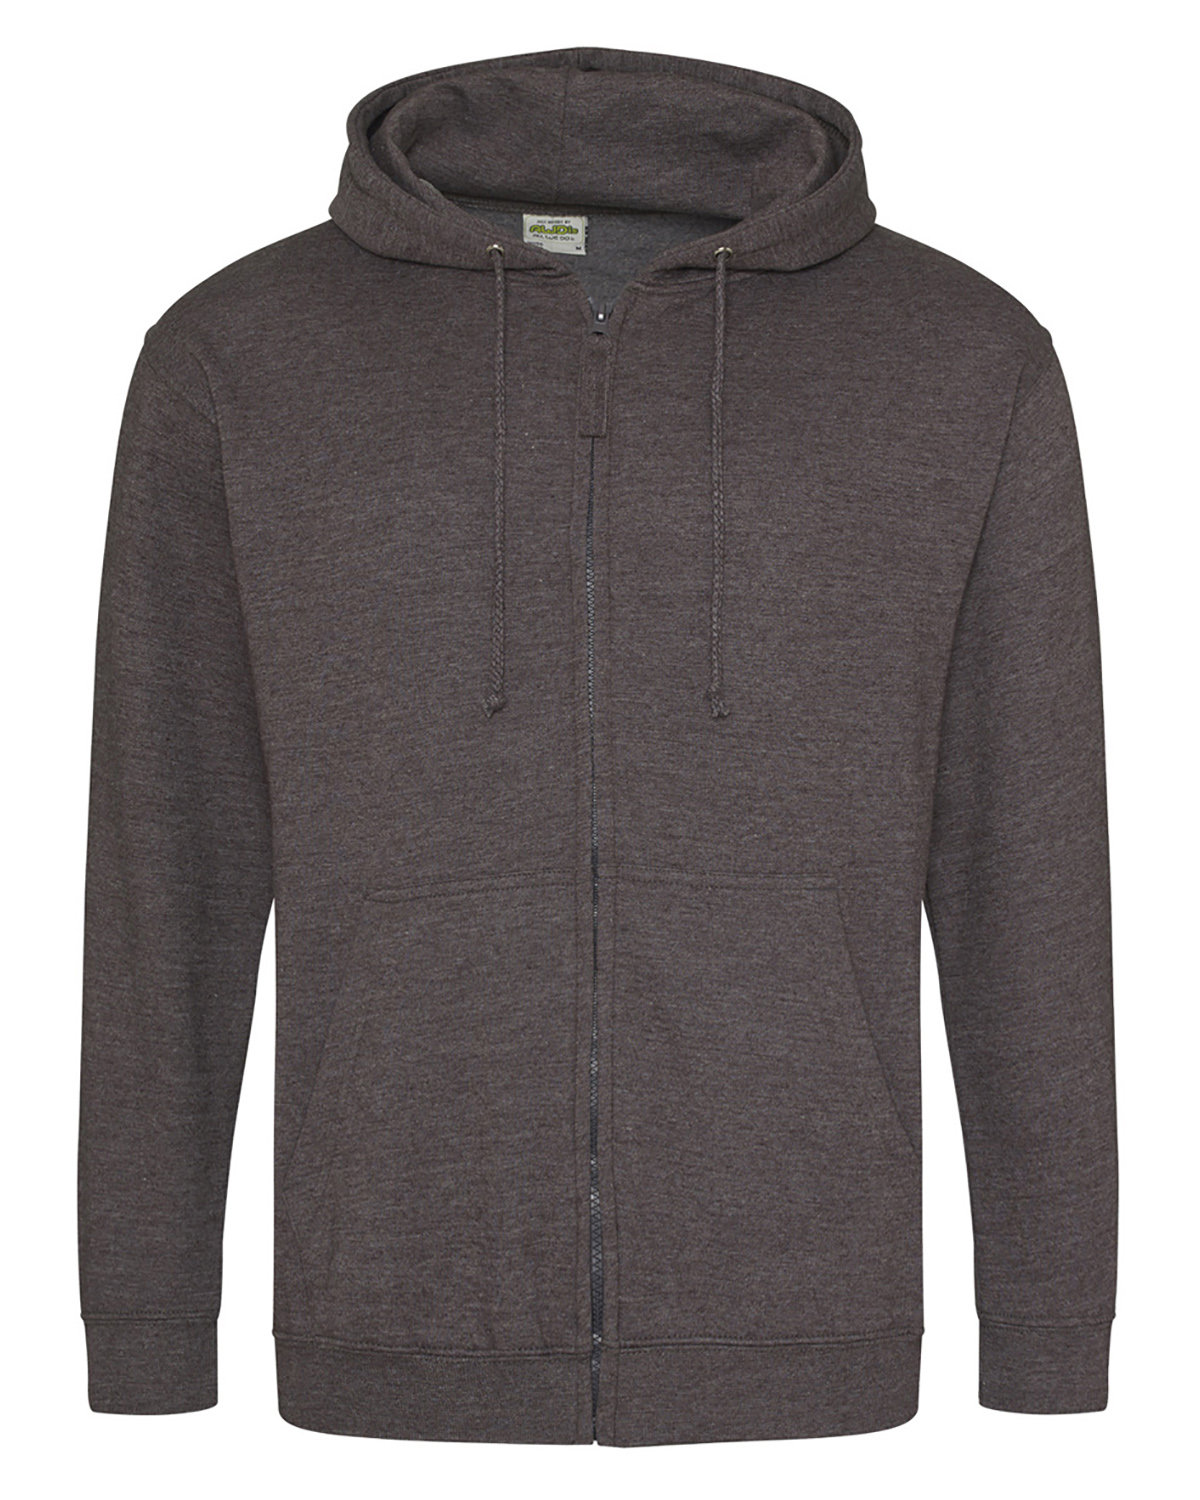 Just Hoods By AWDis Men's 80/20 Midweight College Full-Zip Hooded Sweatshirt CHARCOAL